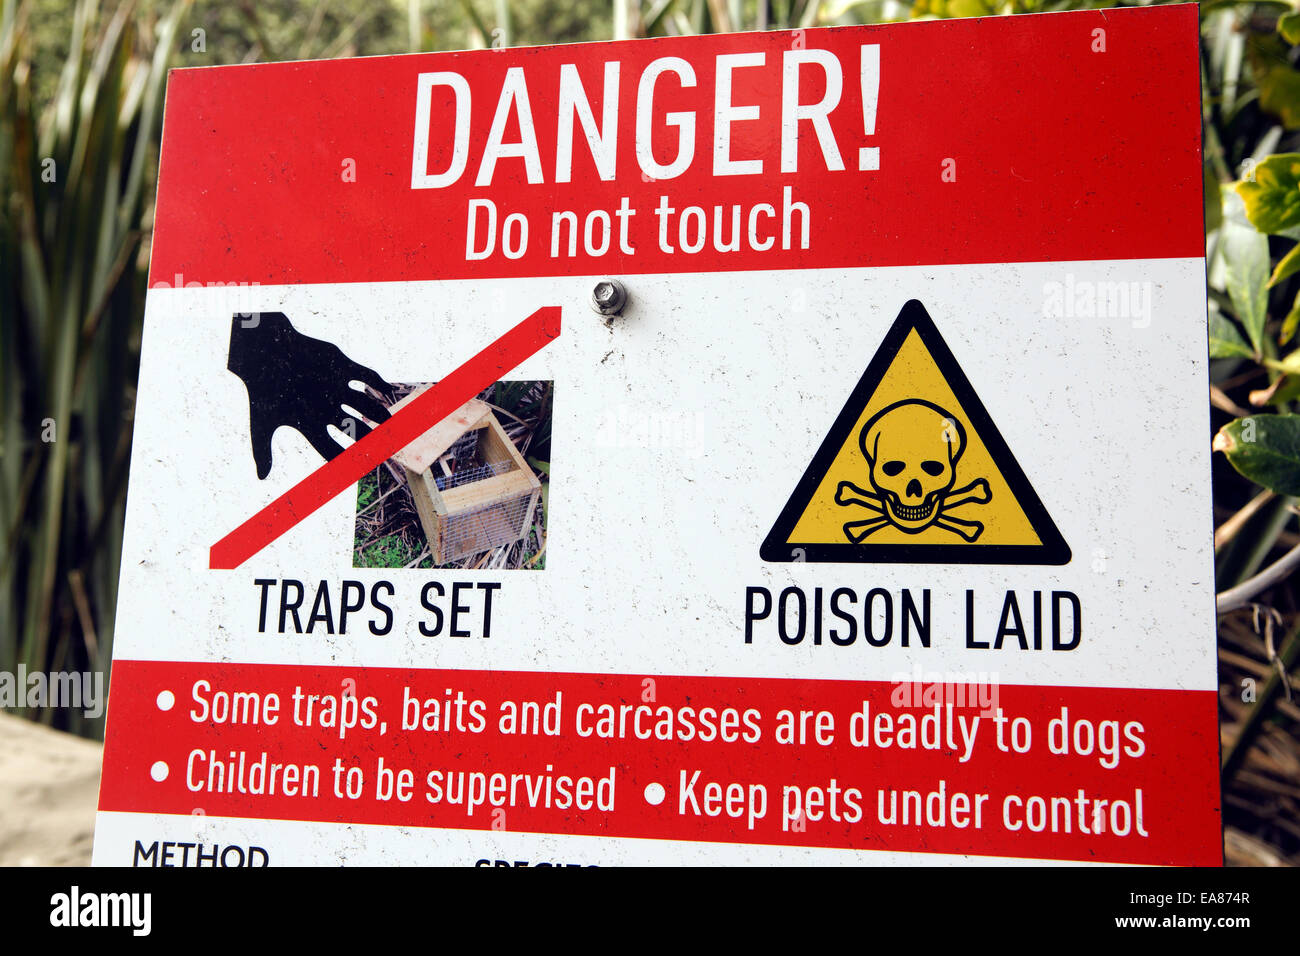 Sign in New Zealand forest warning of traps and poison set for pests in the protection of native bird species - Stock Image